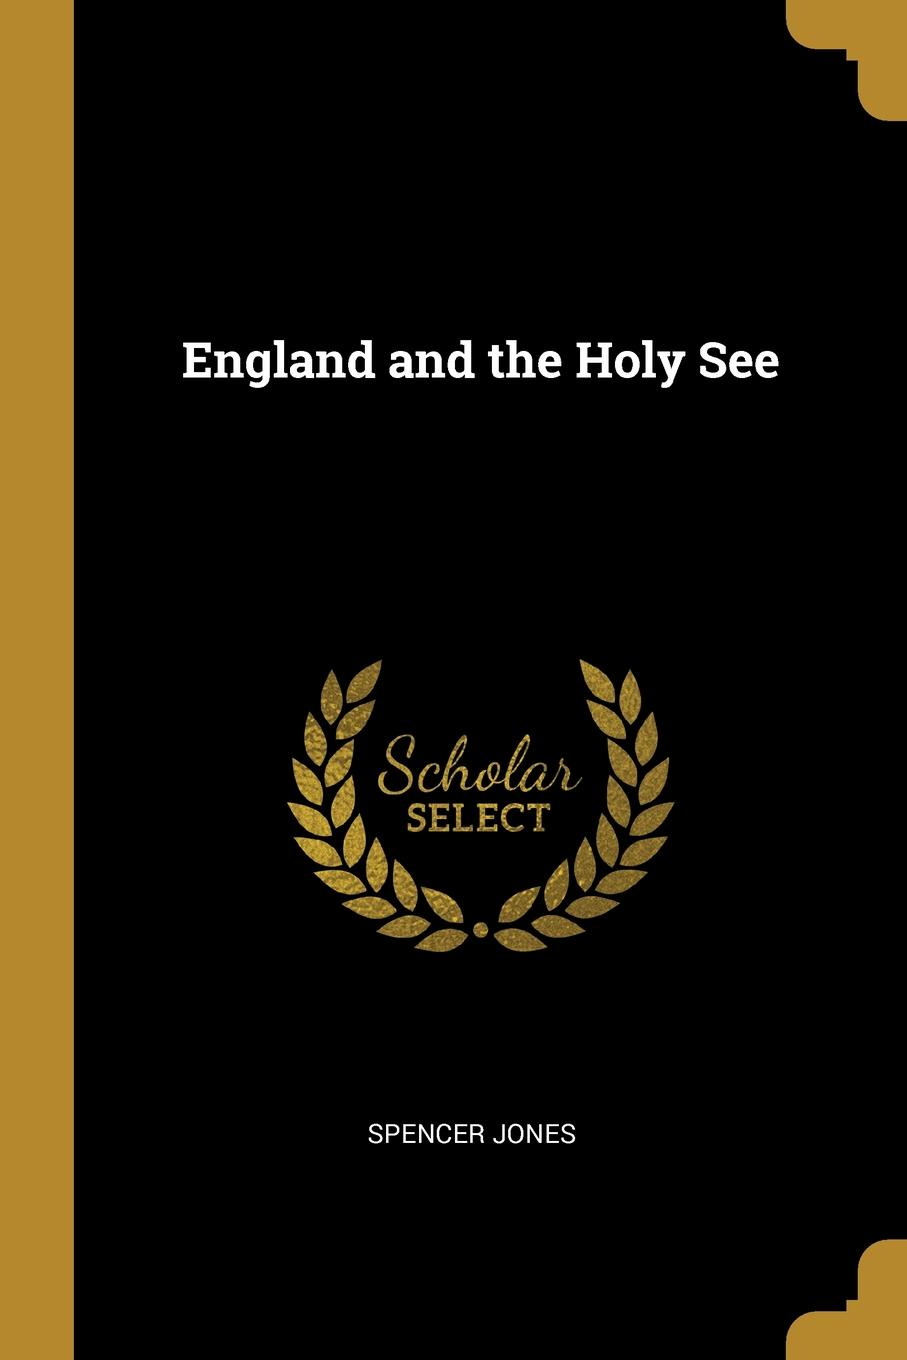 England and the Holy See